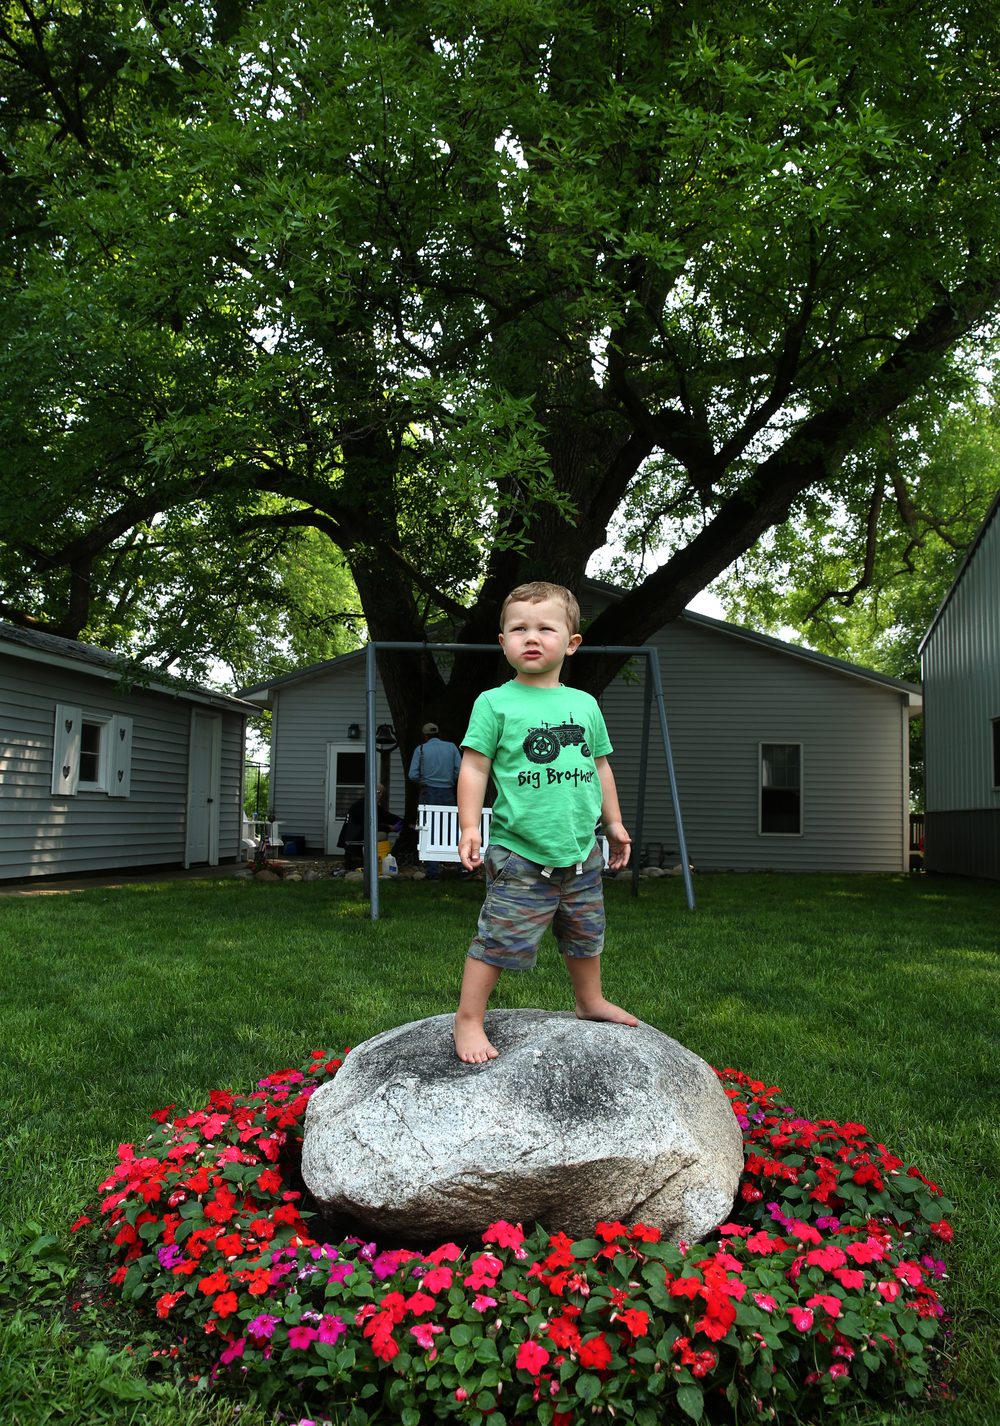 Hudson Gilbert, 2, the grandson of the Howry's, strikes a pose in front of the Champion ash tree on Tuesday. Hudson still has a bit of growing to catch up with the big tree.David Spencer/The State Journal-Register